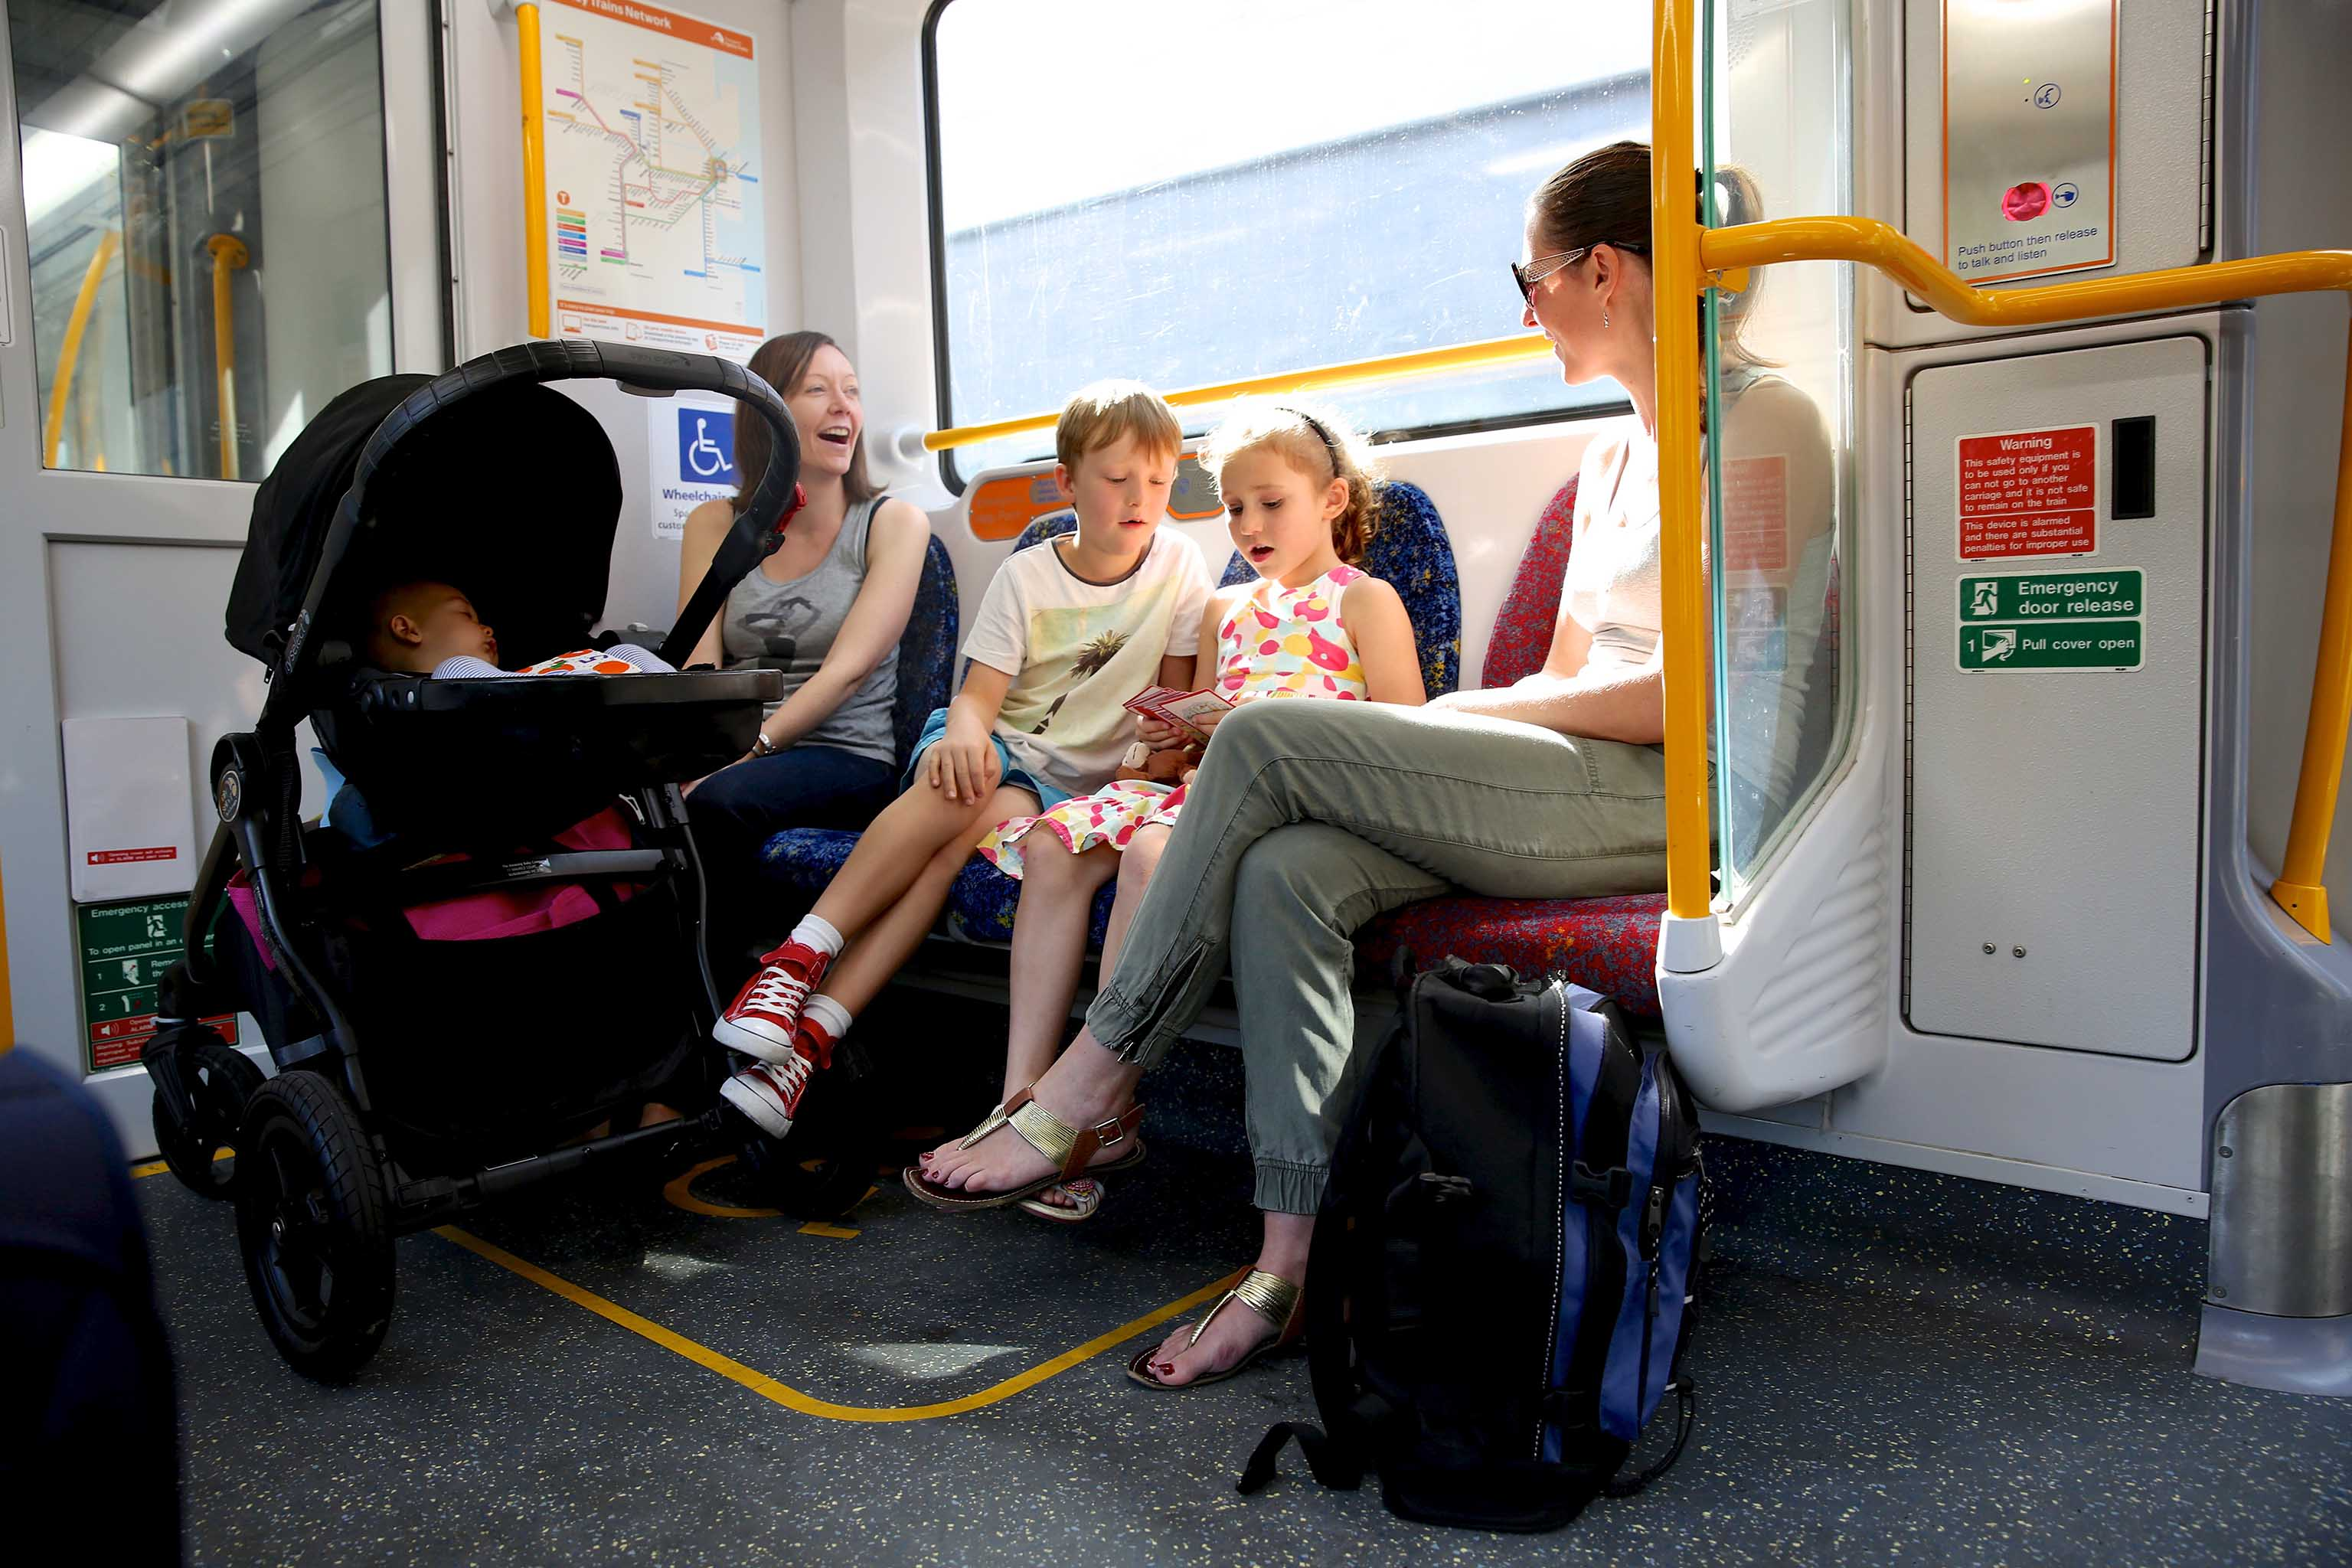 Watoto Stroller On Board A Train